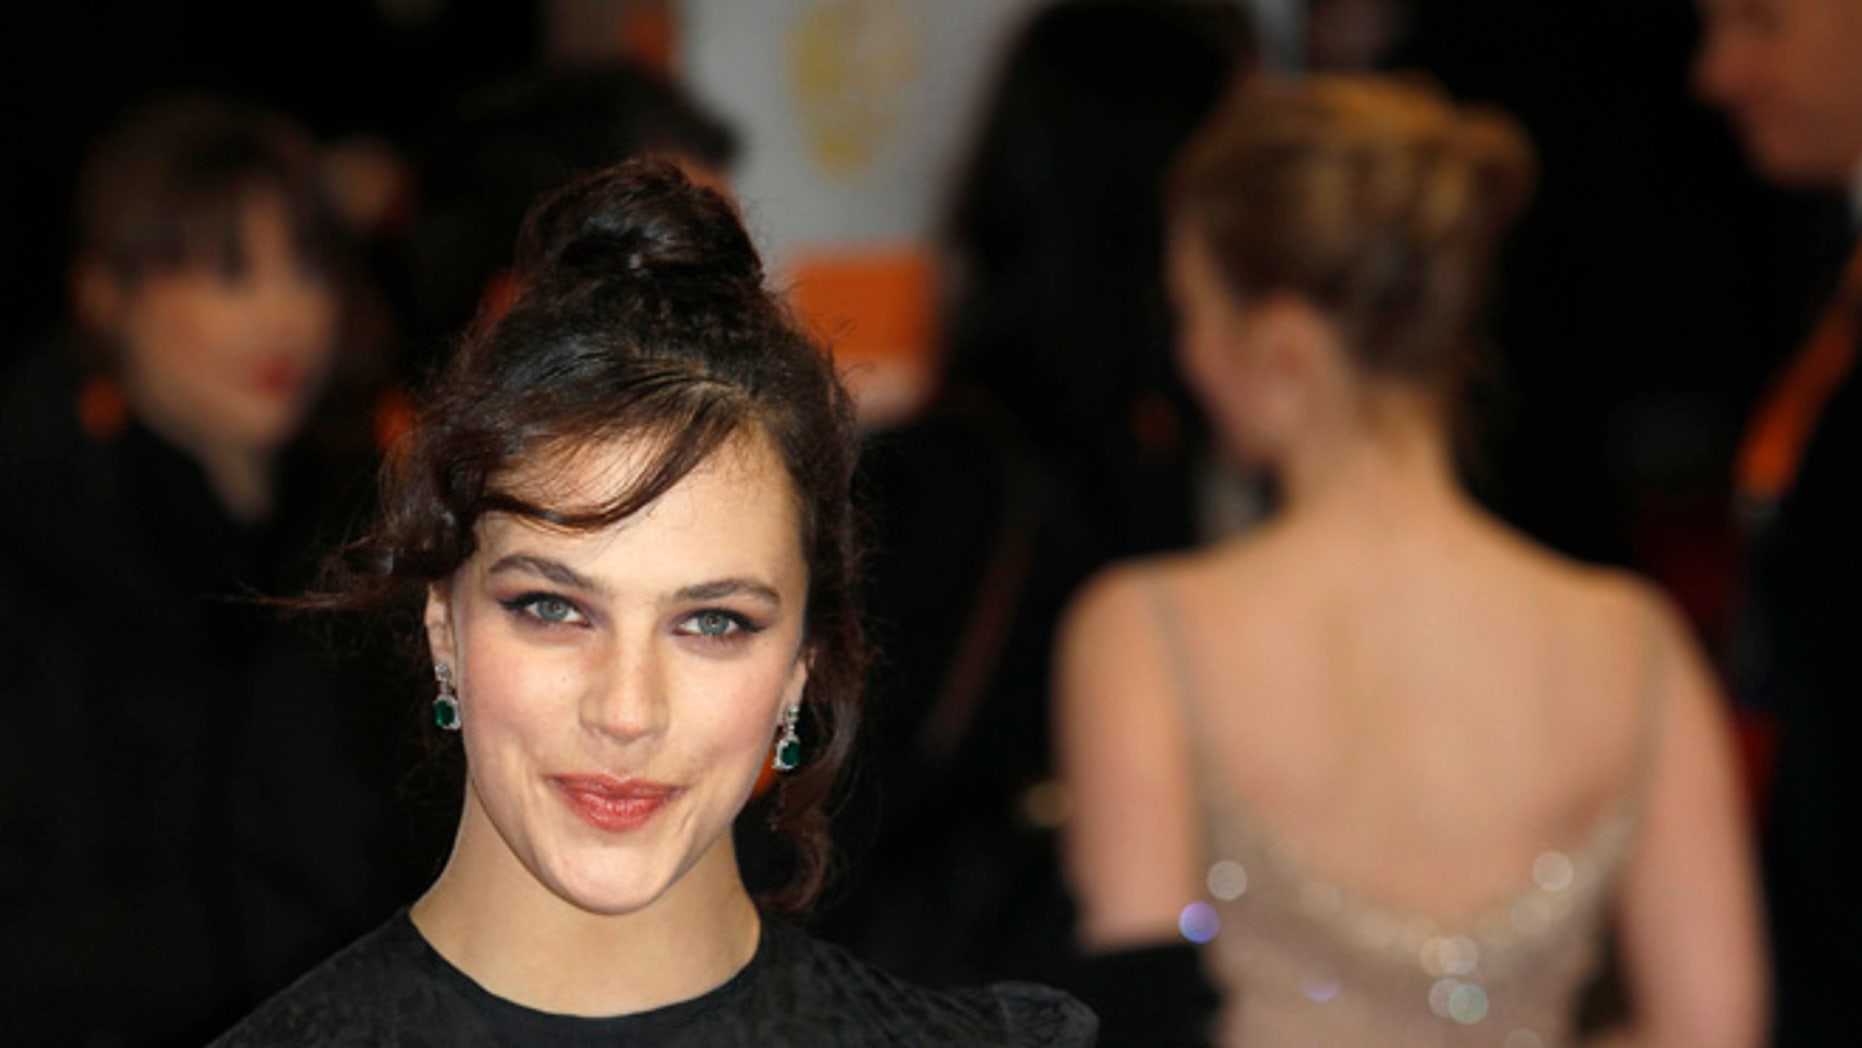 """""""Downton Abbey"""" star Jessica Brown Findlay has opened up about struggling with an eating disorder."""